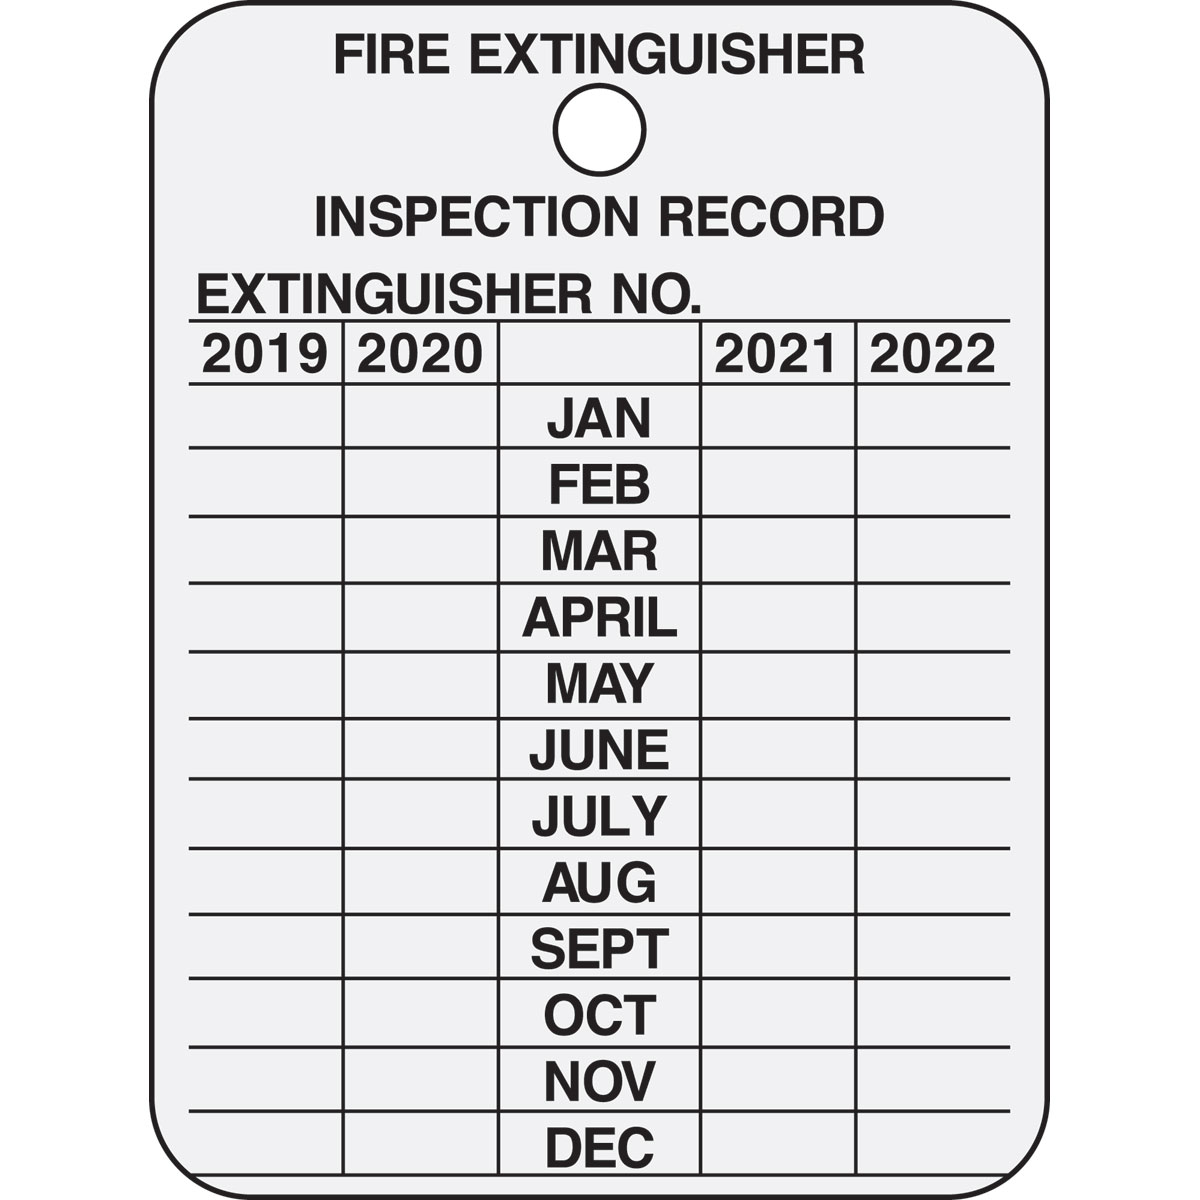 picture about Printable Fire Extinguisher Inspection Tags referred to as Fireplace Extinguisher Inspection Historical past 4 Many years